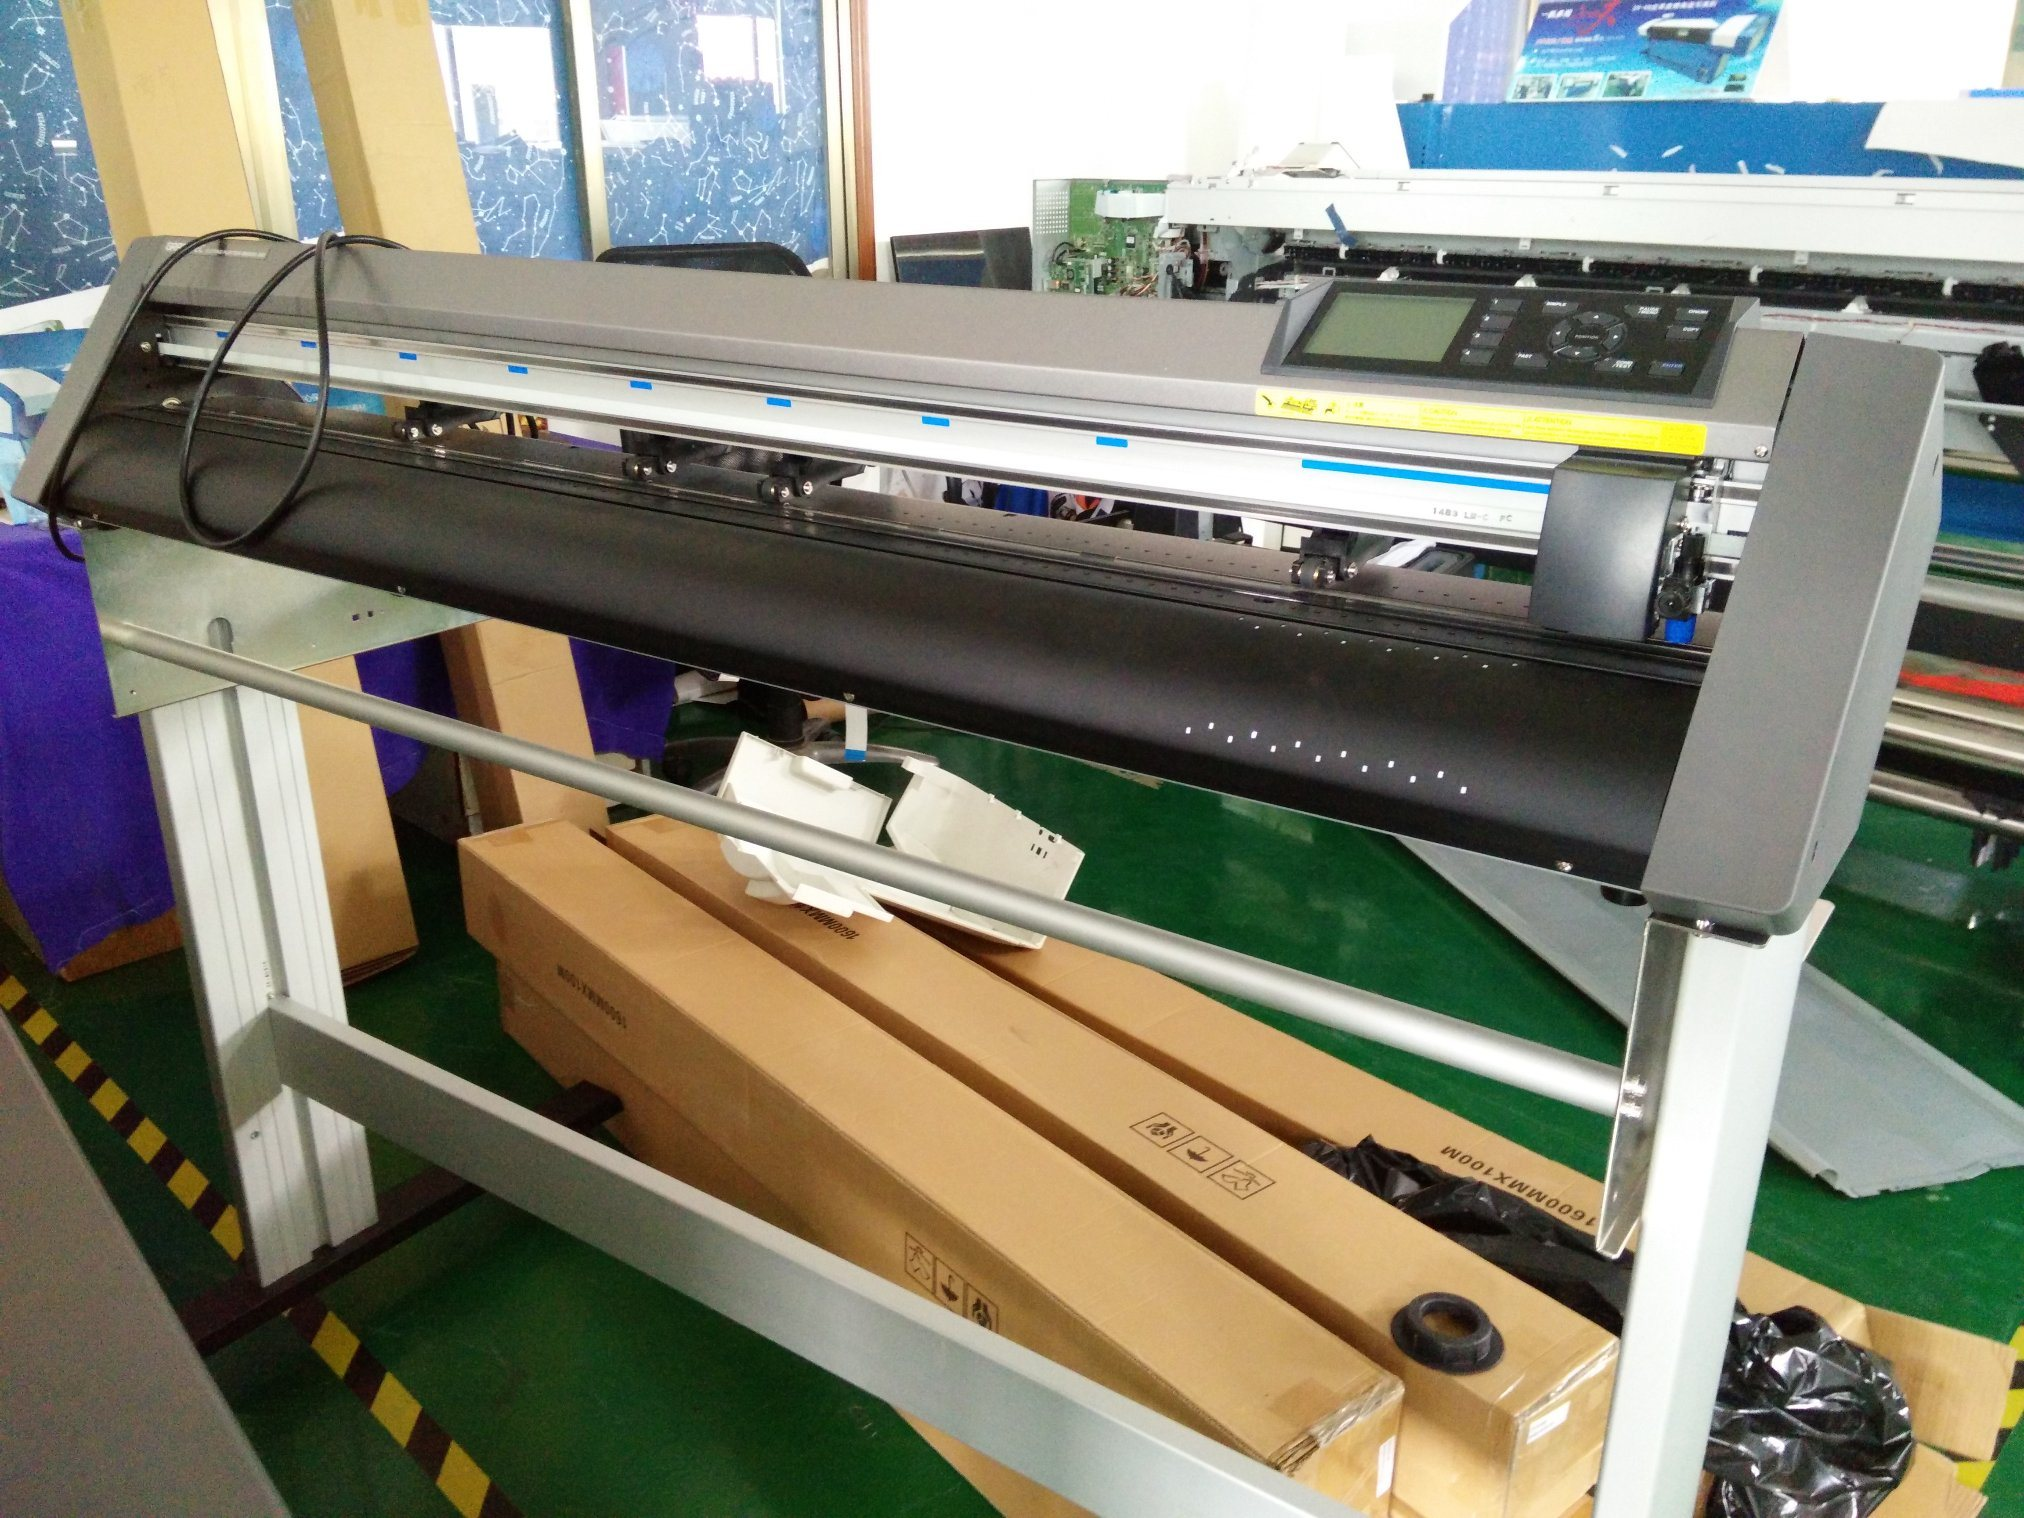 Graphtec Ce6000 Vinyl Cutter Plotter for Cutting Machine